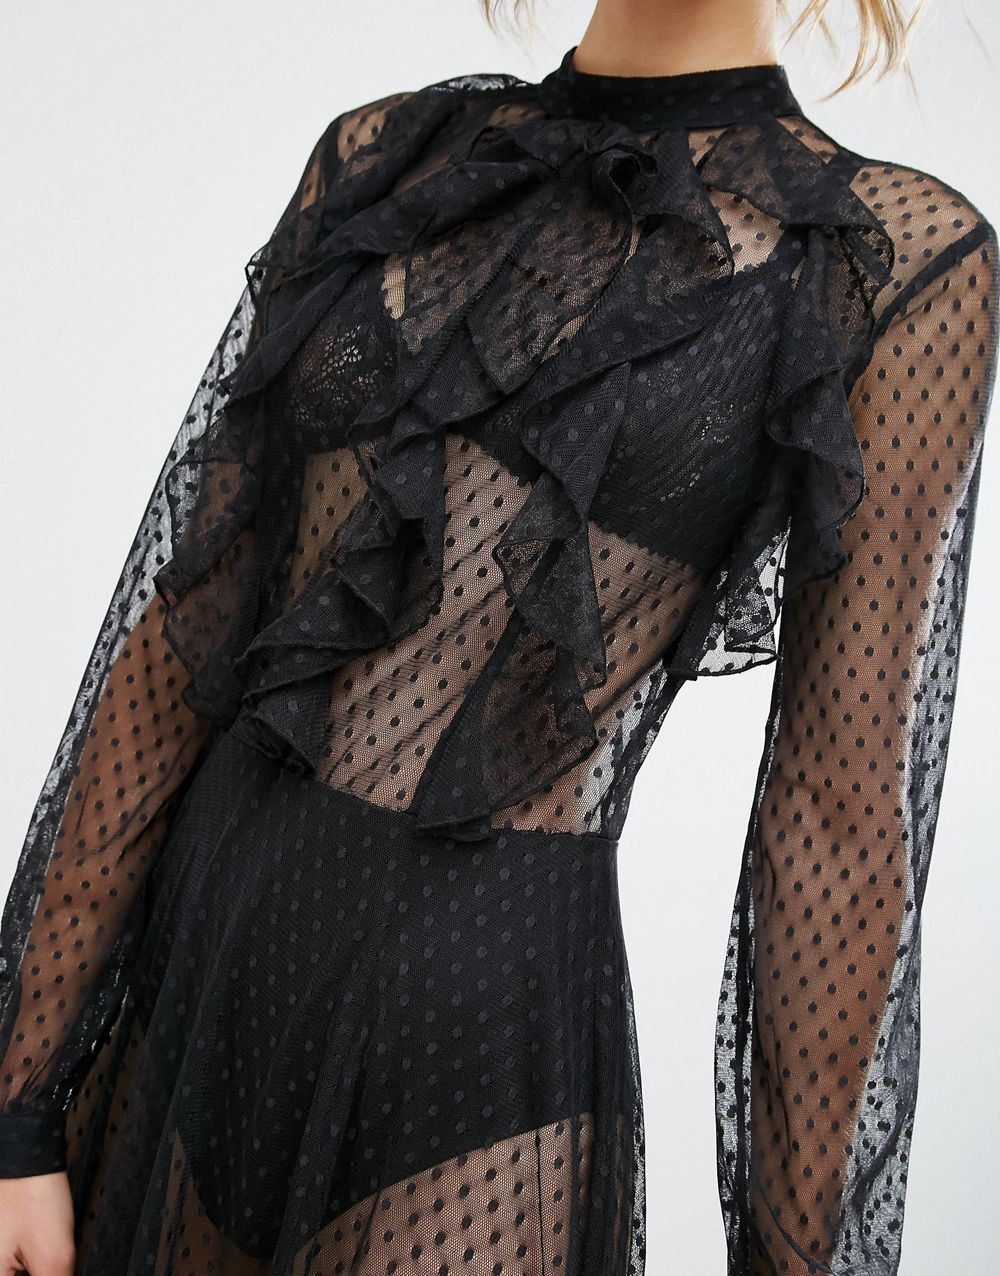 DOT Mesh Fabric for Wedding Dress at Low Cost